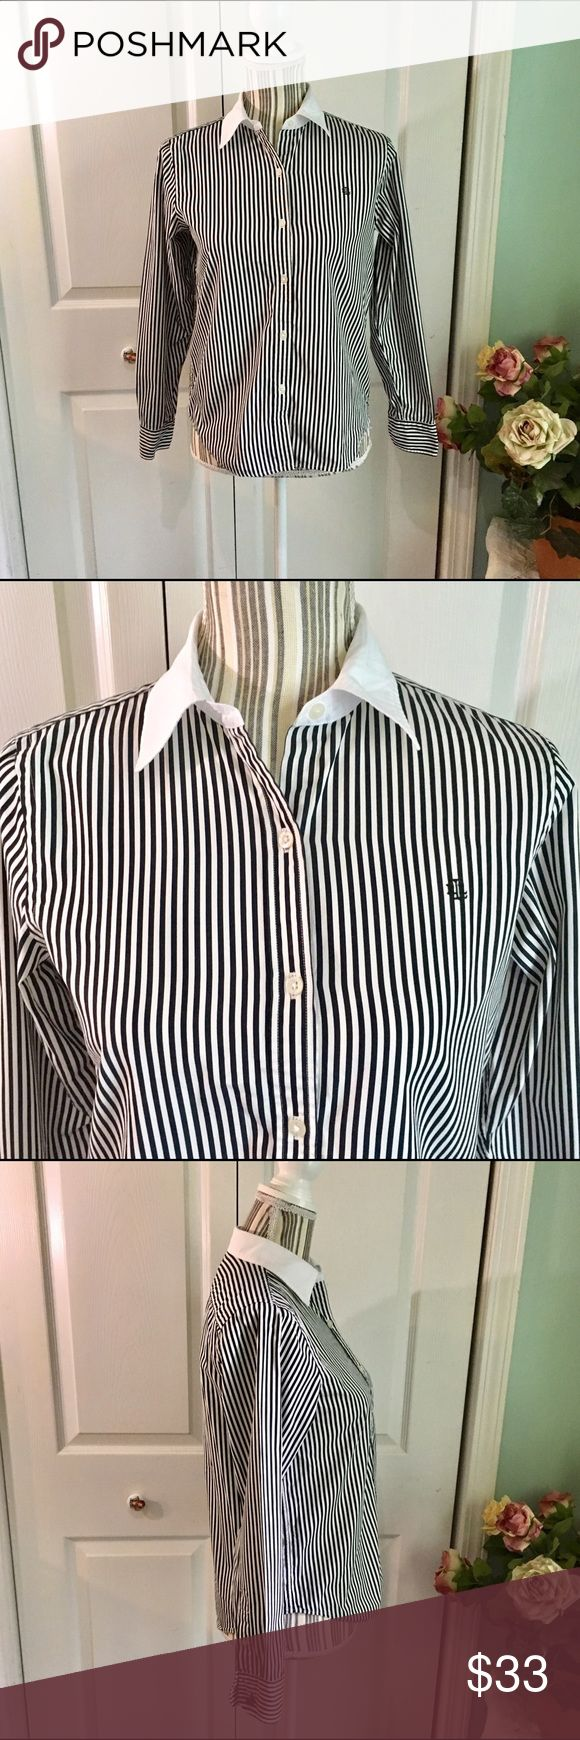 LAUREN RALPH LAUREN Petites Striped Oxford Shirt This Lauren Ralph Lauren Petite oxford blouse is black and white stripe with white collar and cuffs and embellished cuff buttons. Perfect for work or the weekend. LRL logo on left chest.   Size SP, measurements are approximate: - 18 inches underarm to underarm  - 23 inch sleeves  - 24 inches shoulder to hem   No stains, holes, rips, pilling. Lauren Ralph Lauren Tops Button Down Shirts